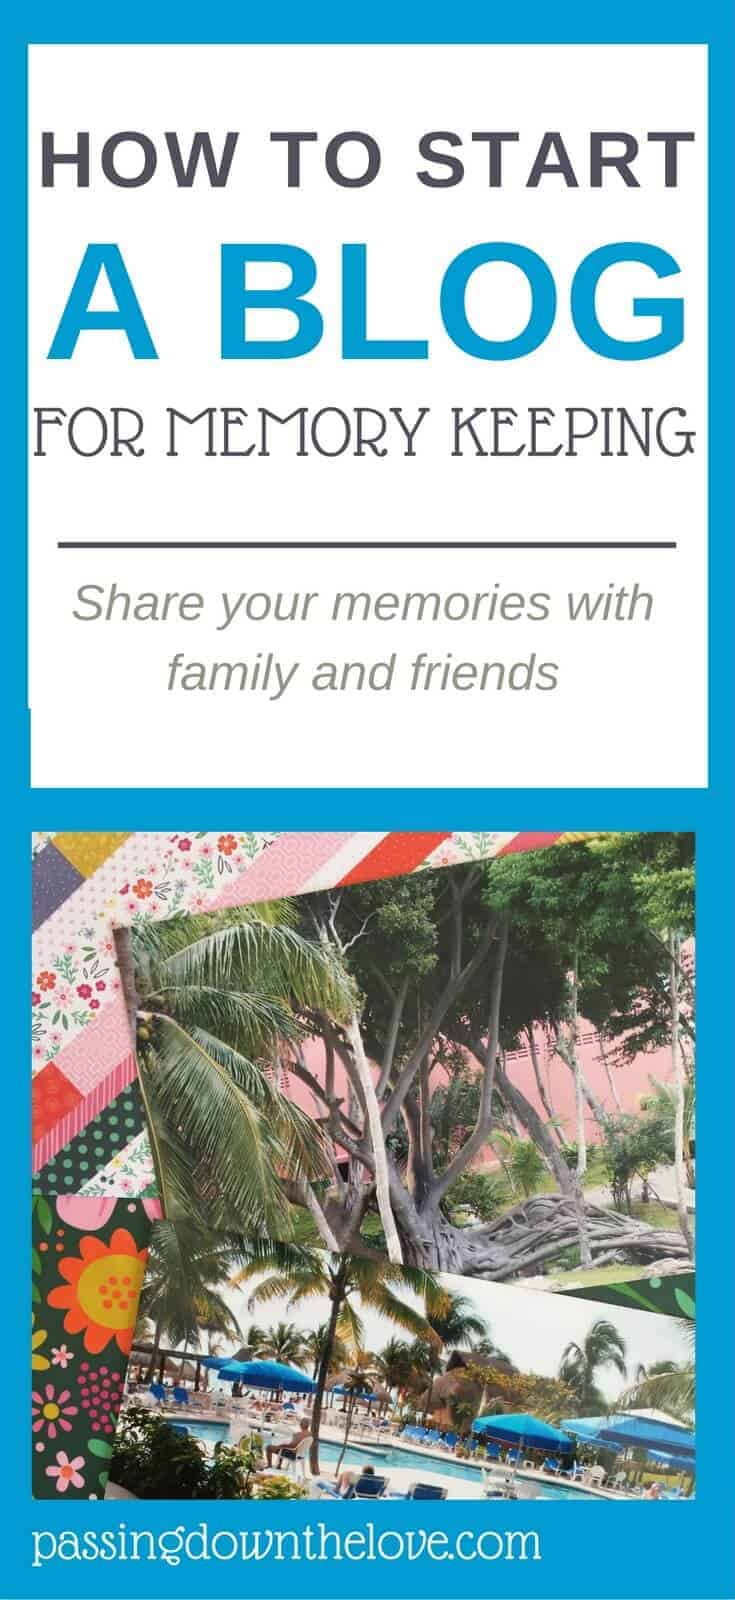 Use a blog for keeping and sharing your family memories.  Learn how to start a blog for memory keeping.  A fun way to share your life.